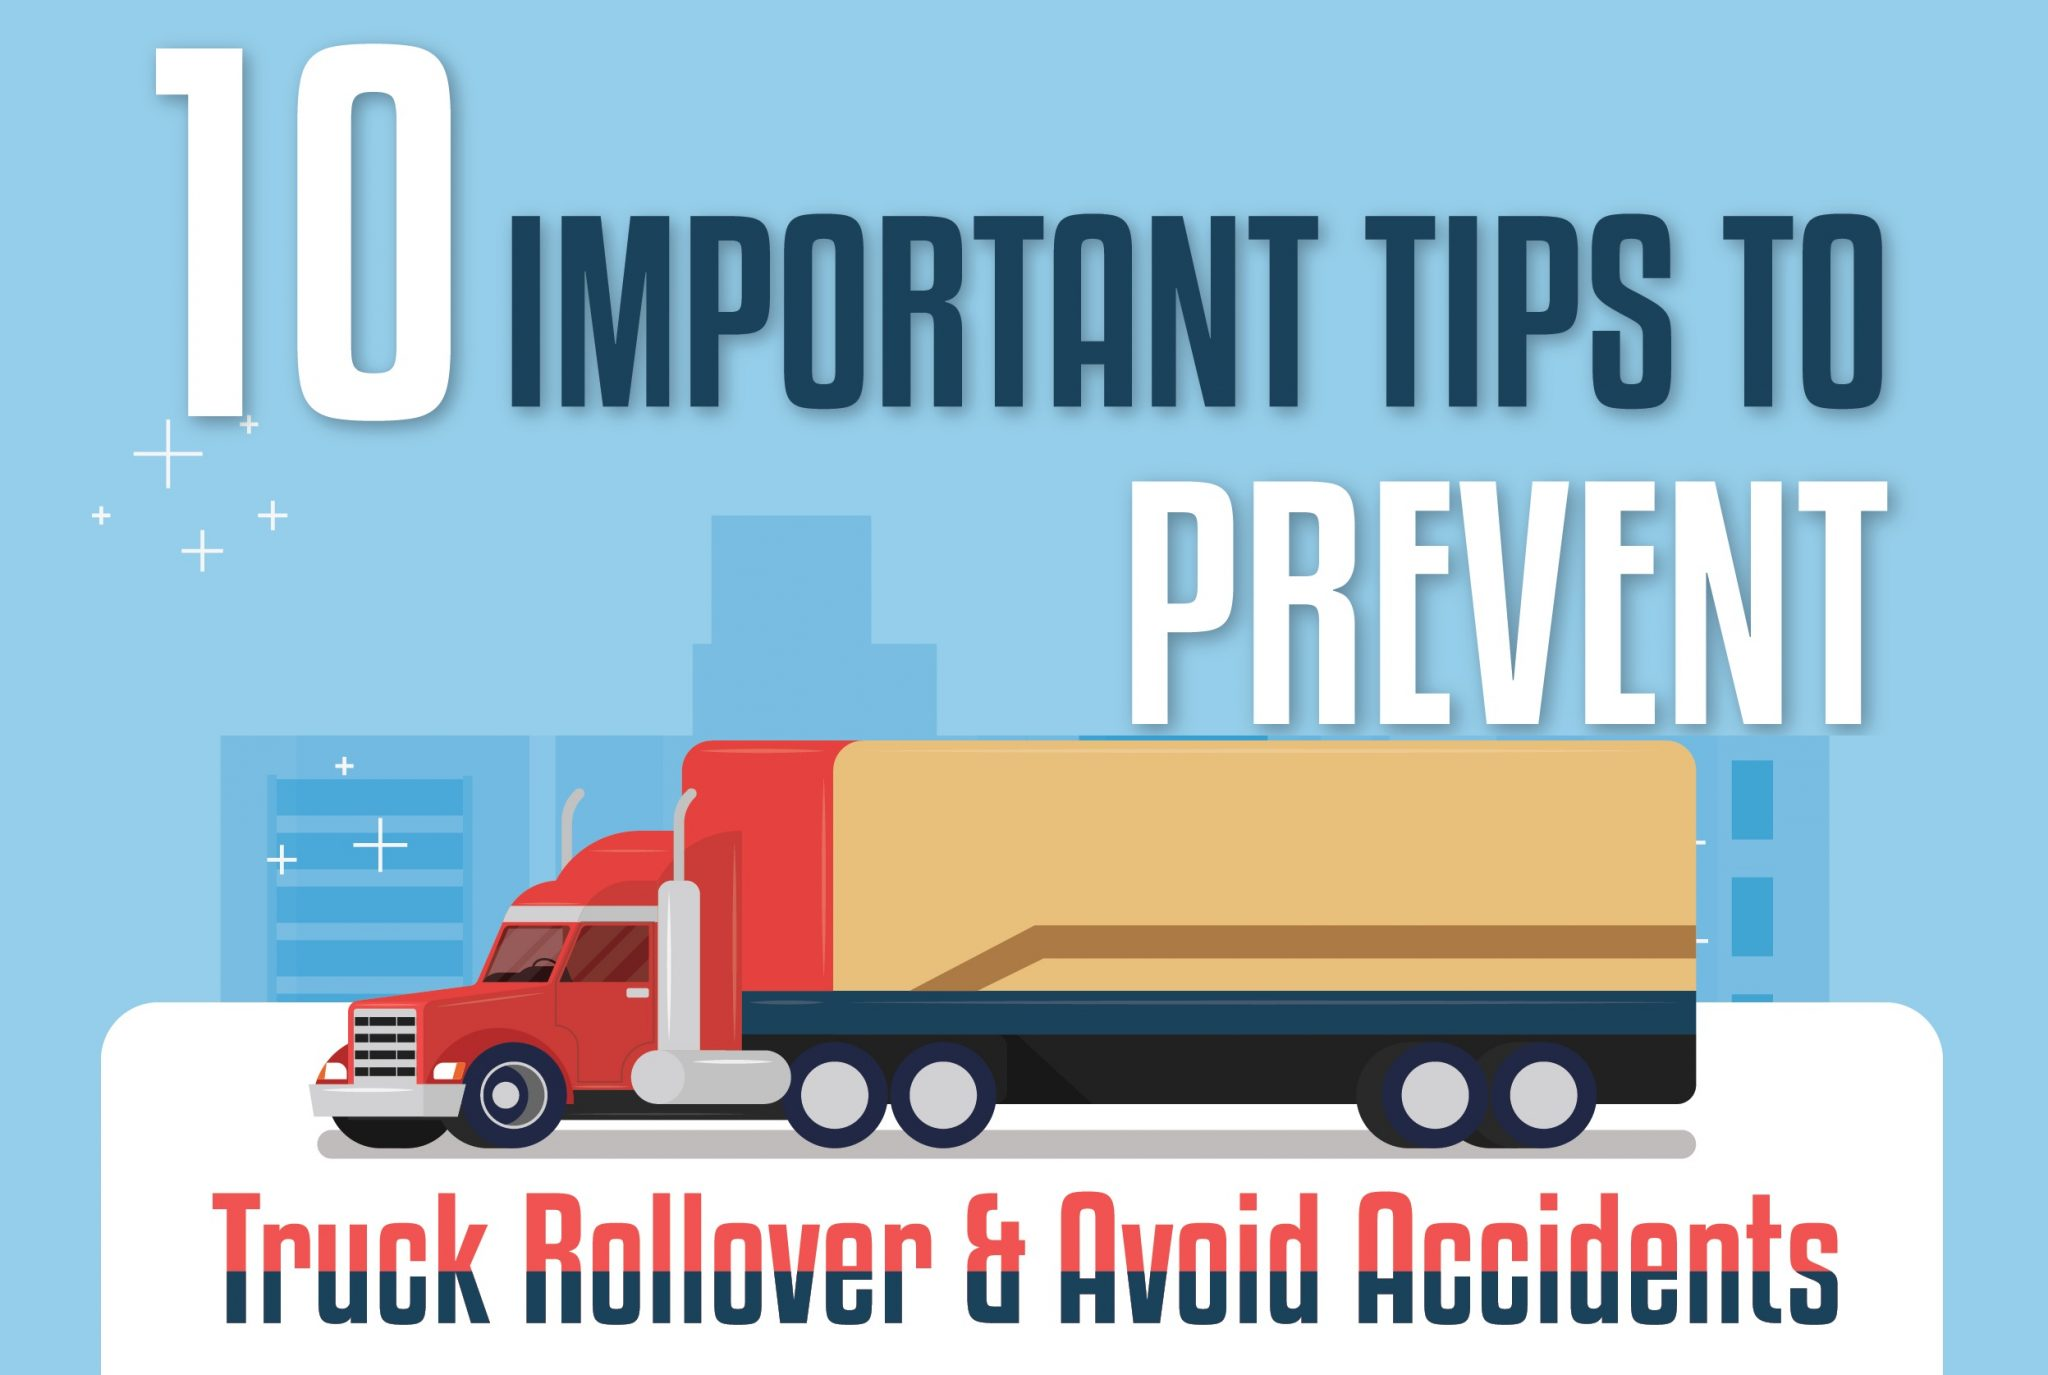 INFOGRAPHIC: Important Tips to Prevent Truck Rollover and Avoid Accidents